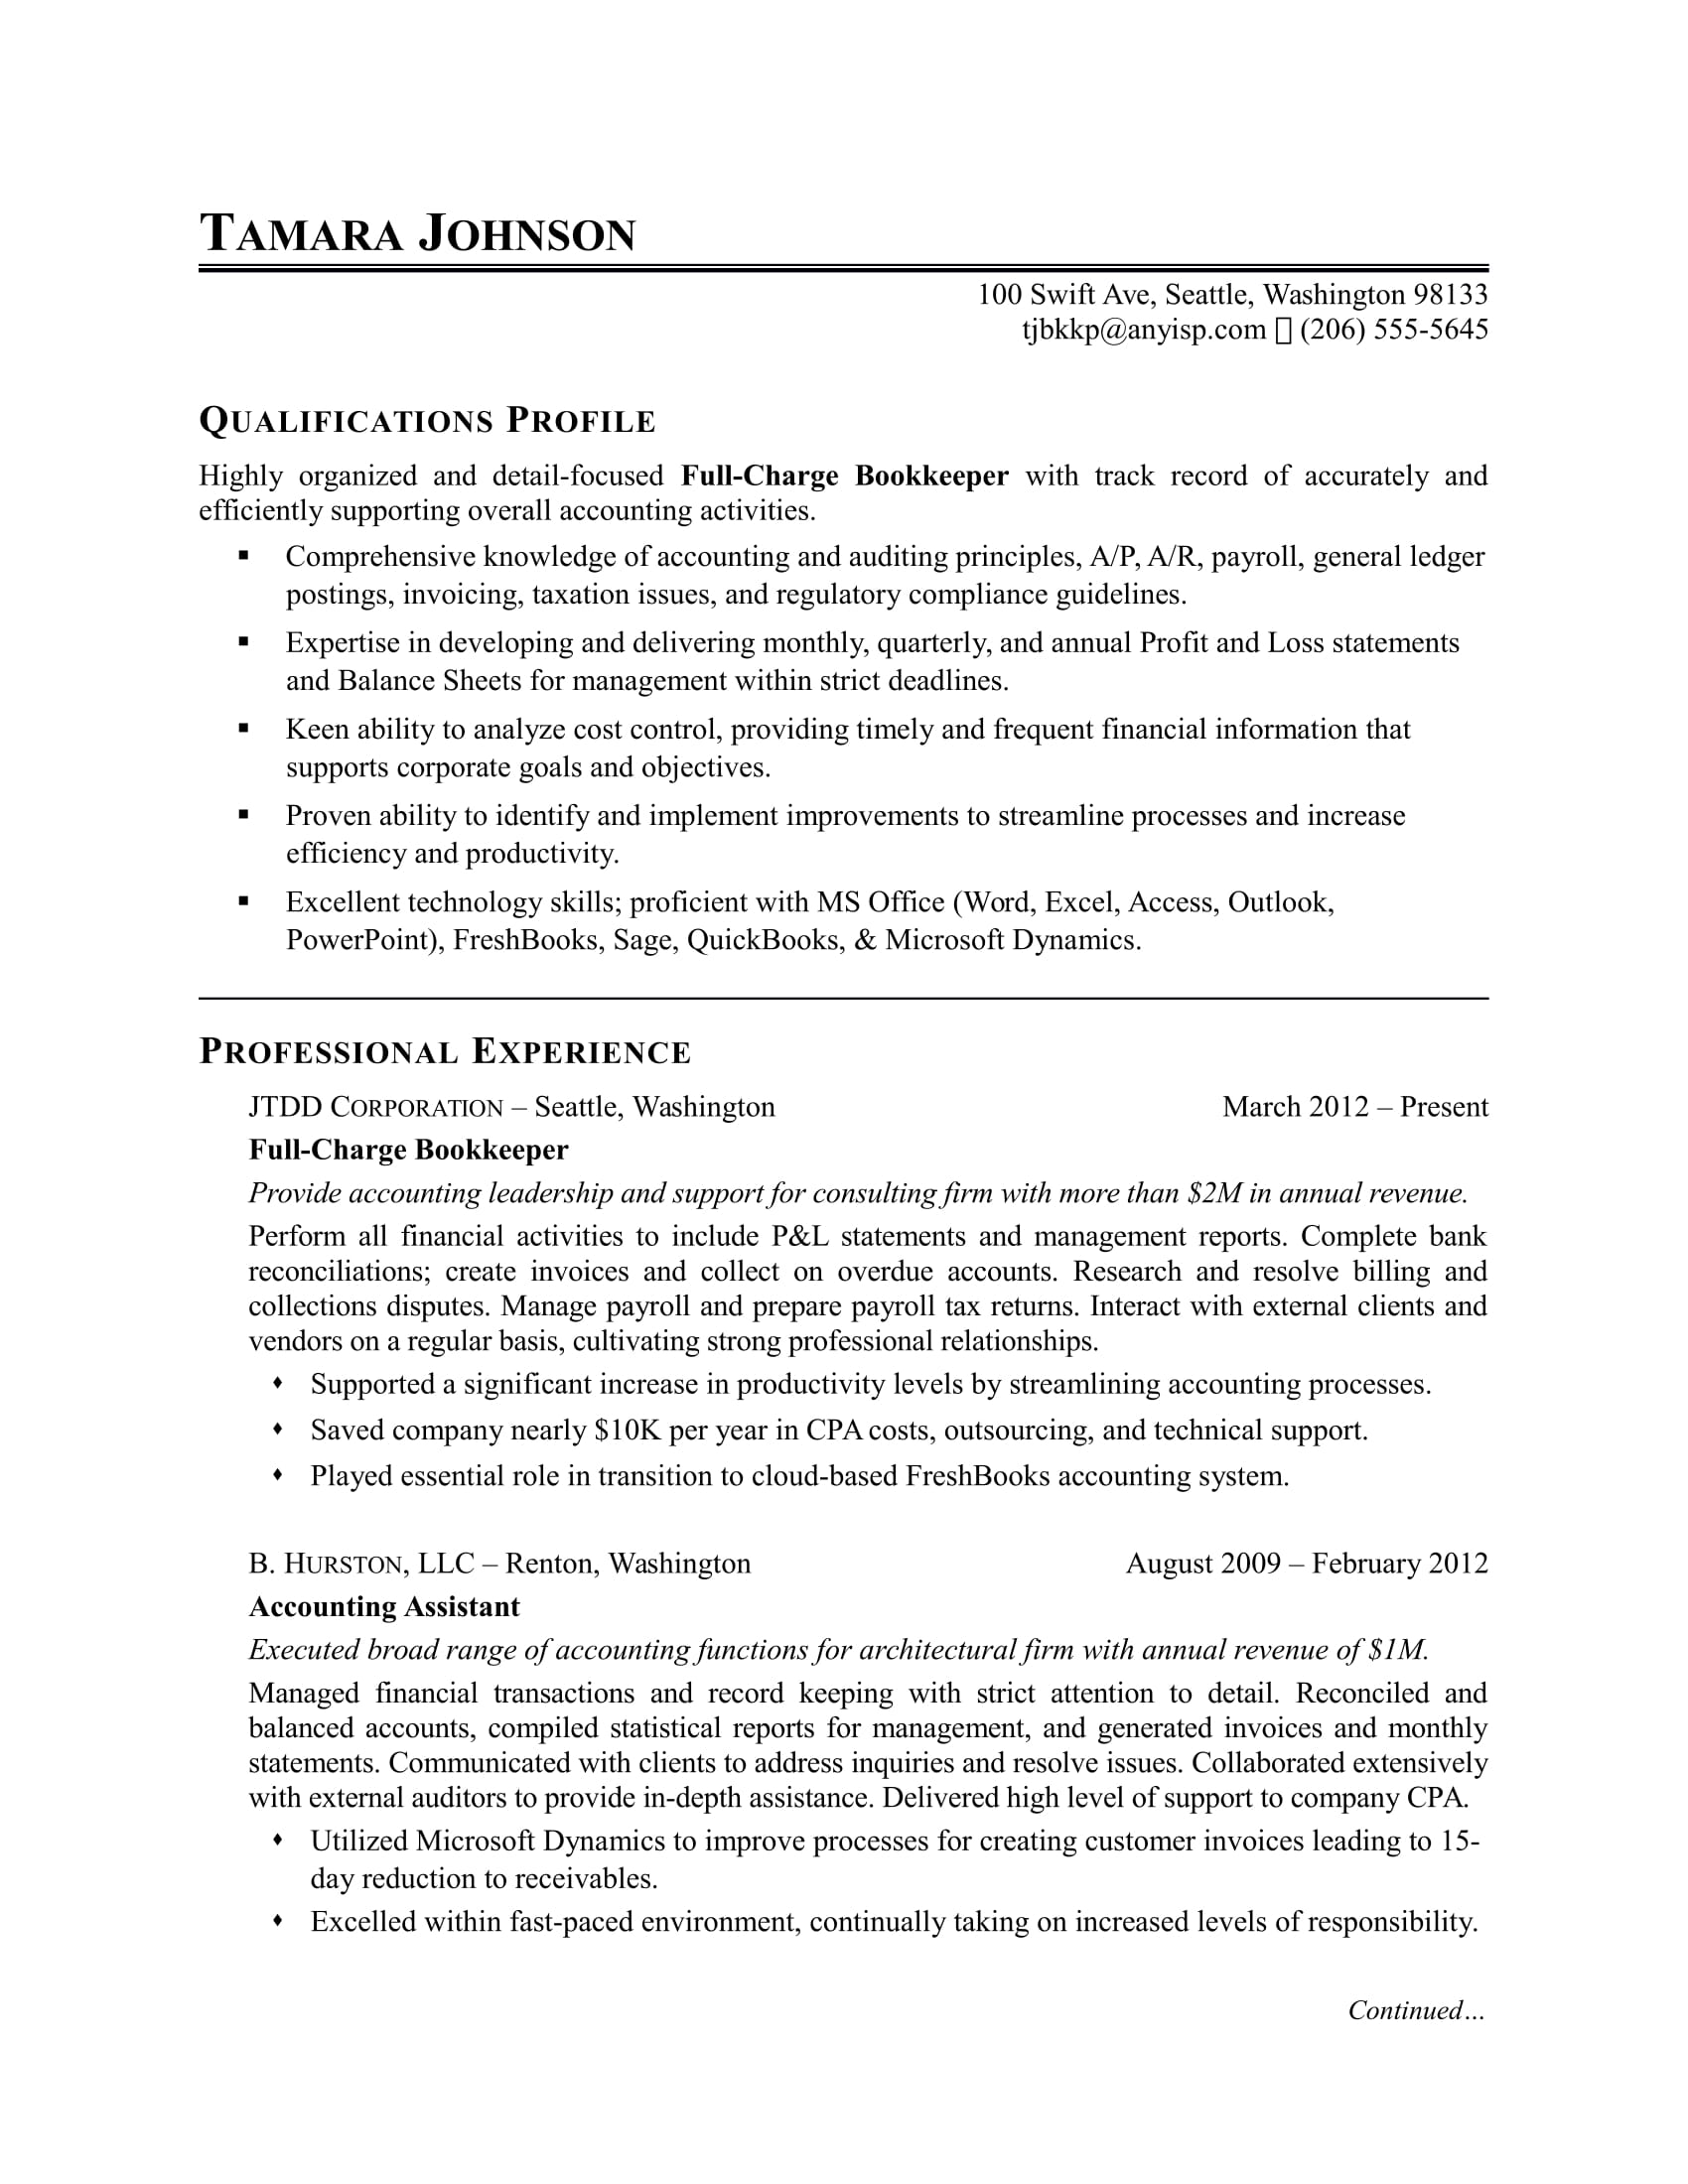 Bookkeeper Resume Sample Monster Com